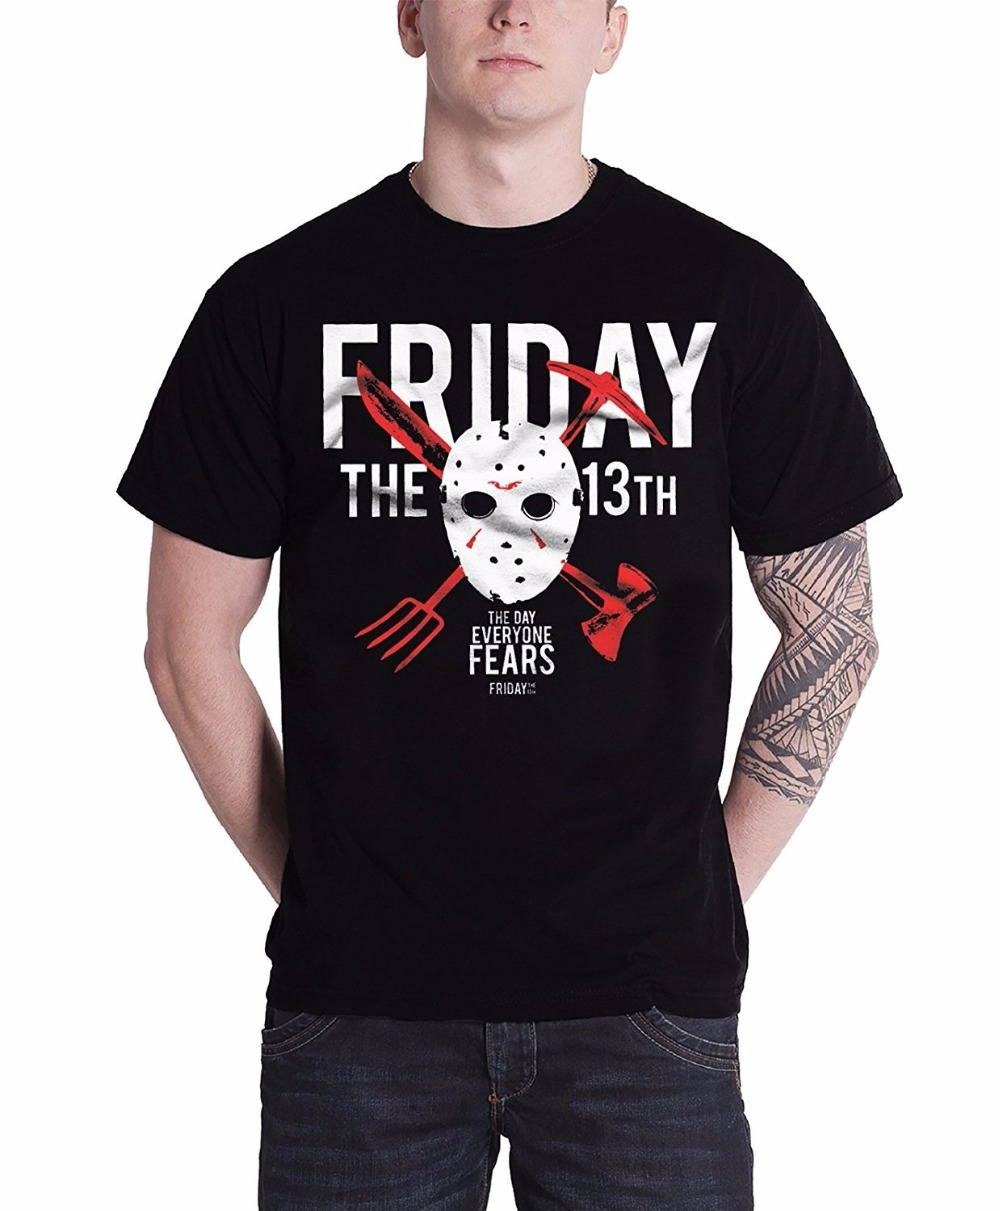 Graphic Tops Premium Men Friday The 13Th The Day Everyone Fears Hyper Black Printed Mens T-Shirt O-Neck Short-Sleeve Tee Shirts